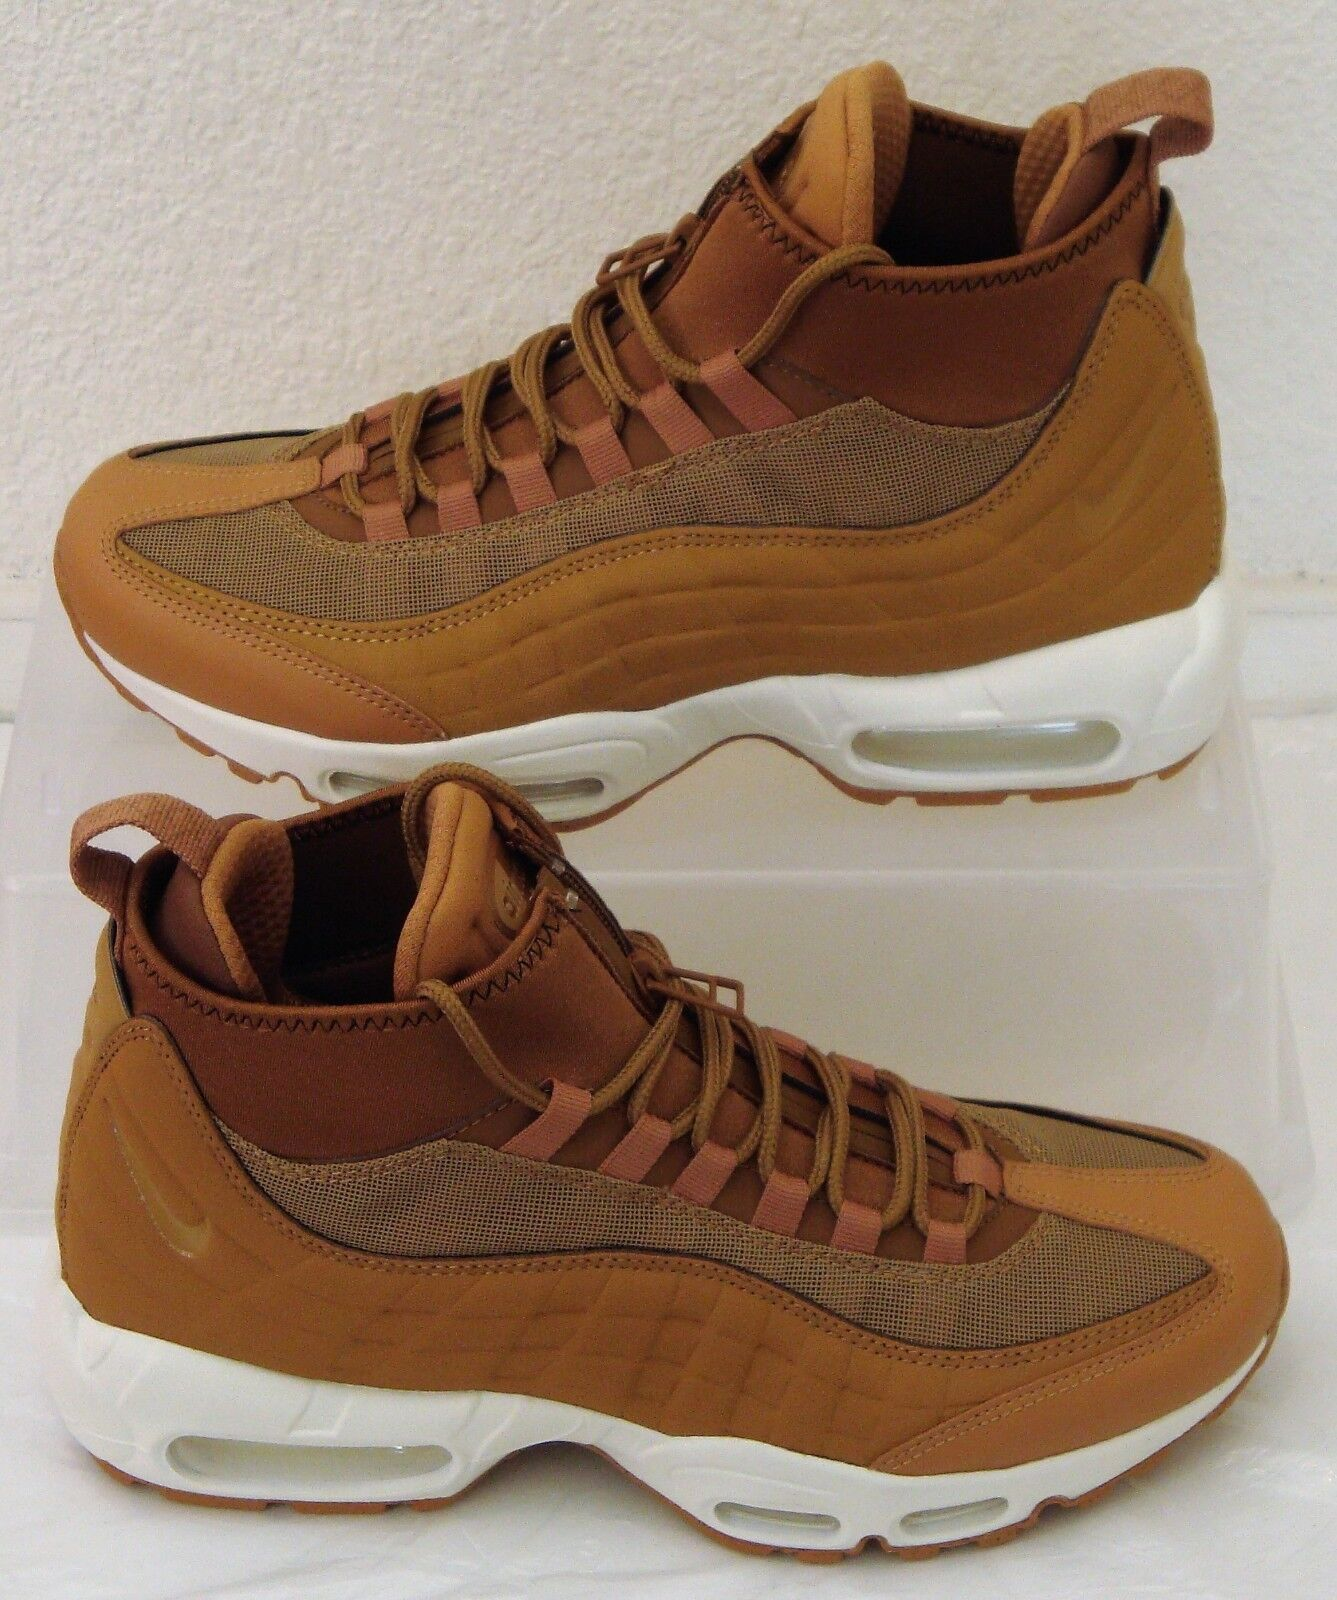 New Nike Air Max 95 Sneakerboot Flax Ale Mens US Size 7.5 Tan